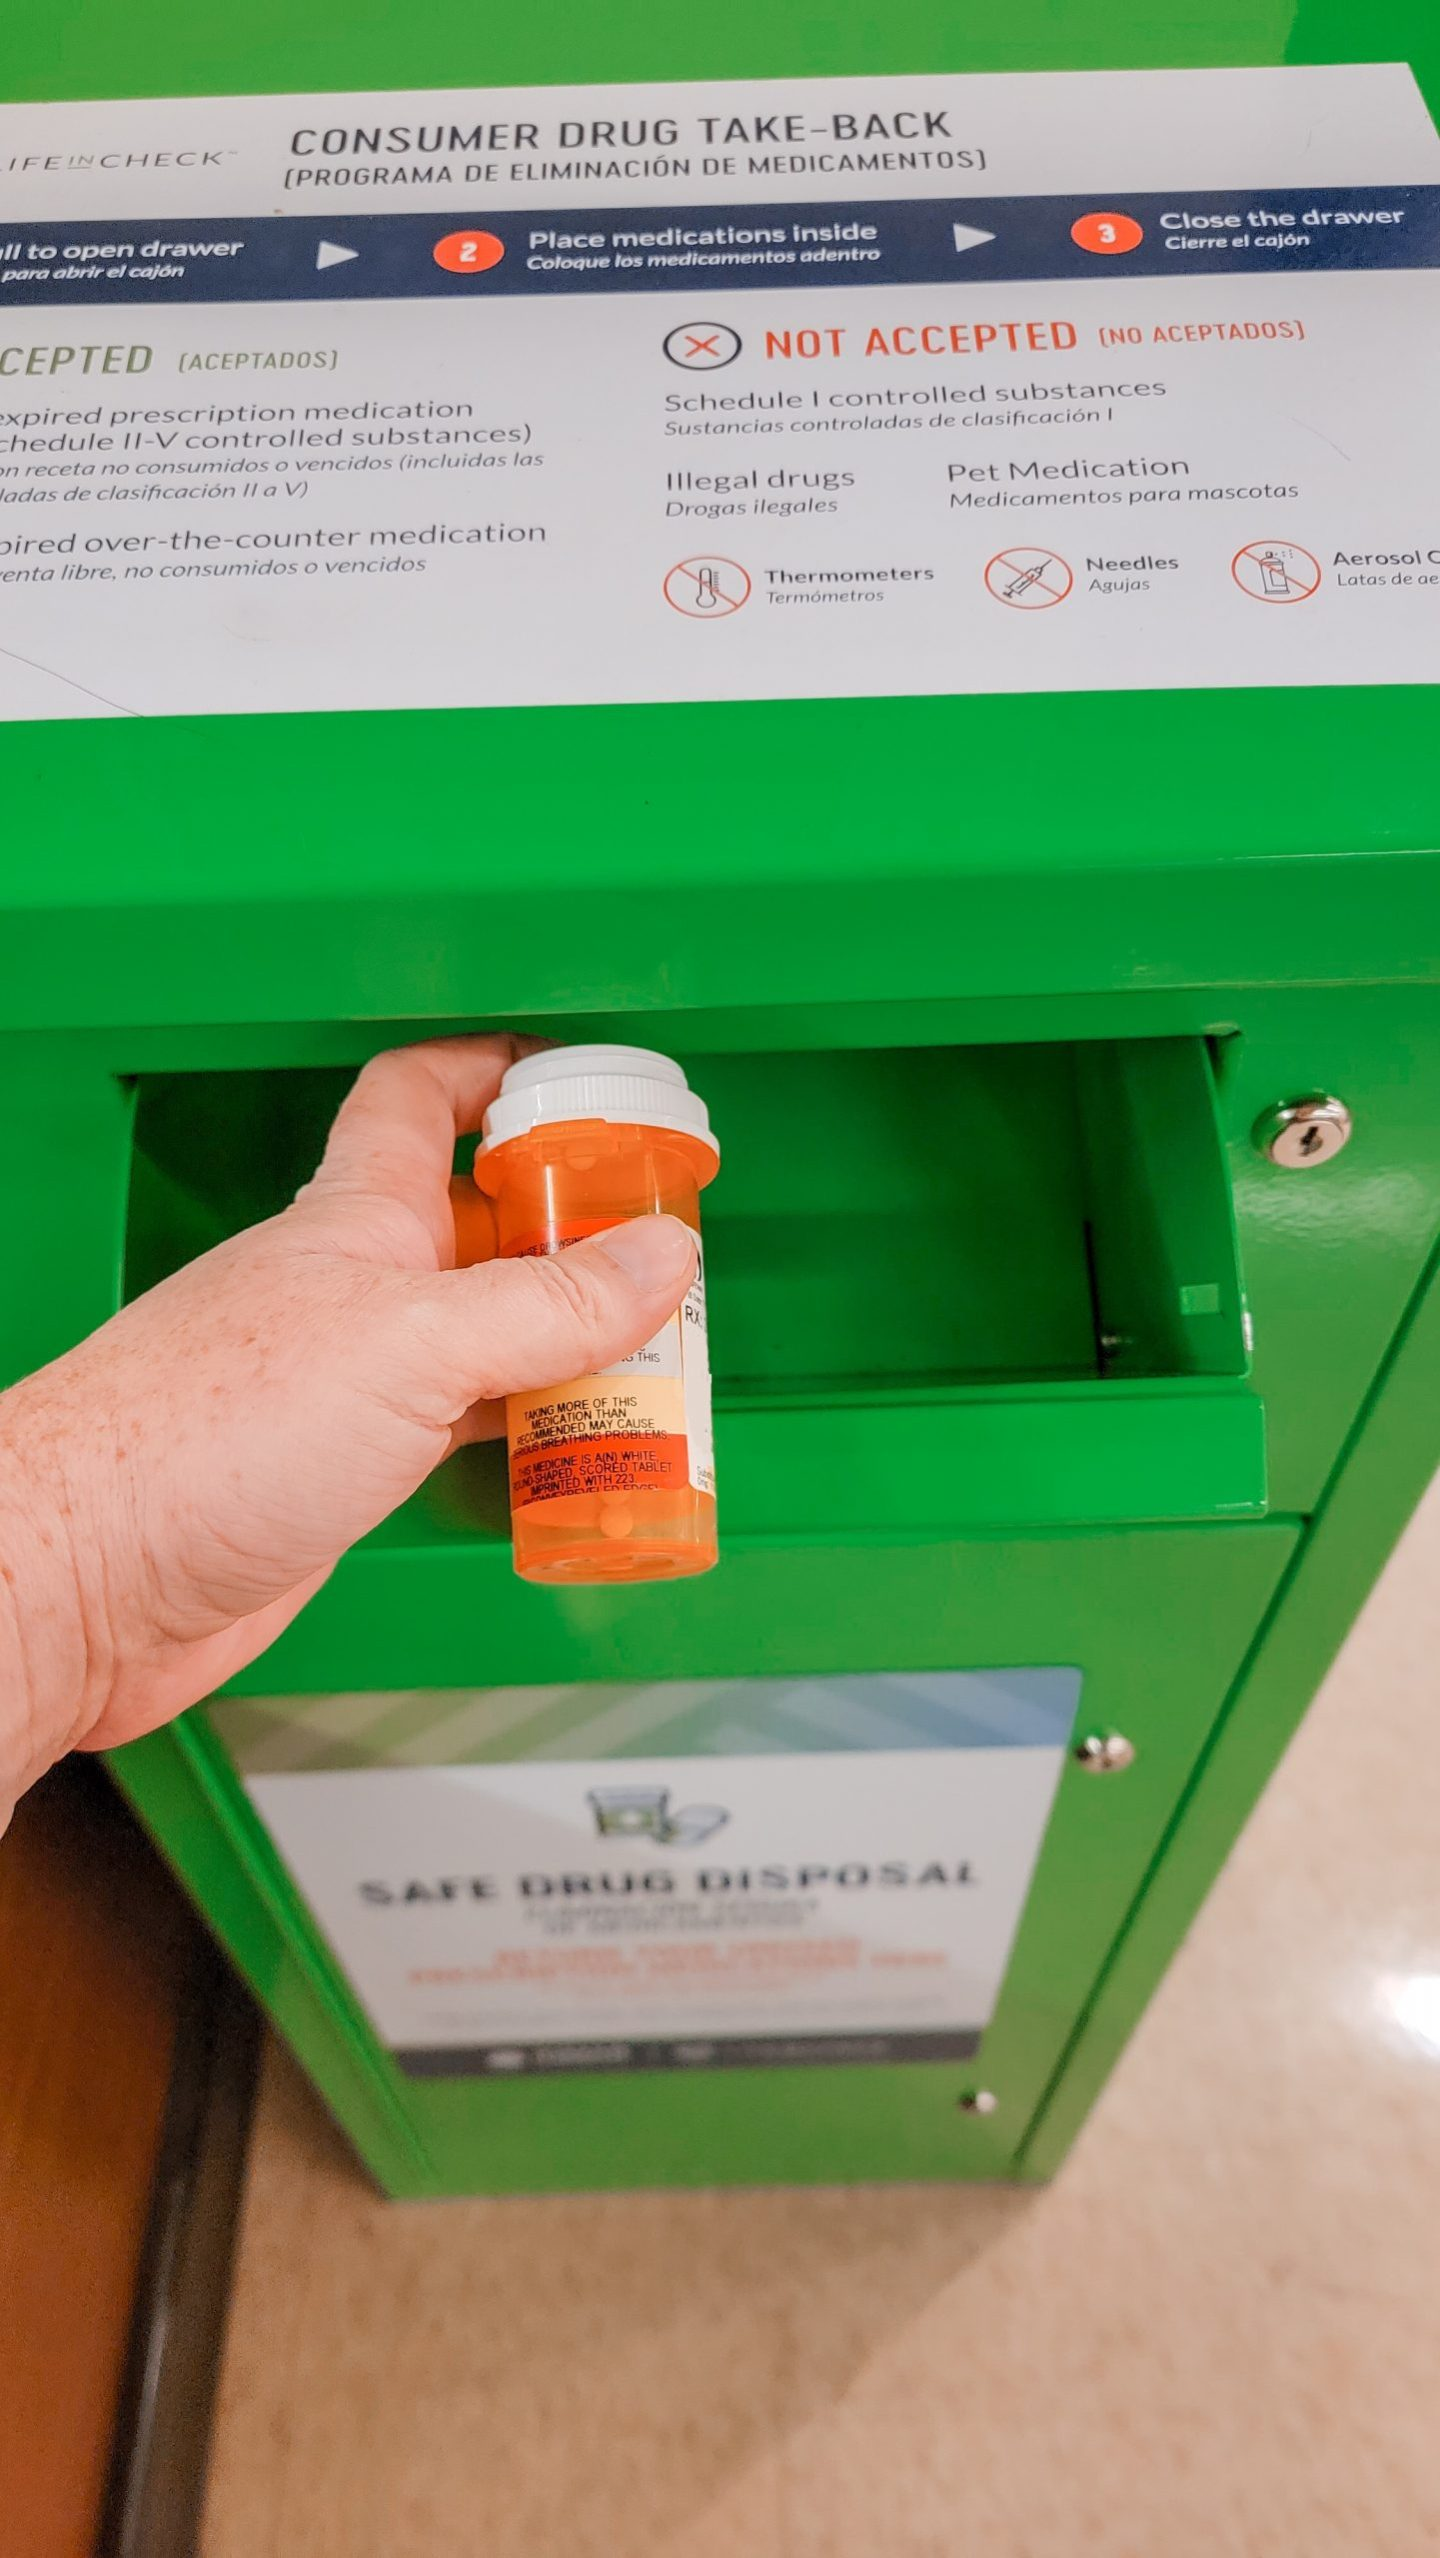 Why You Should Dispose of Unwanted or Expired Medications